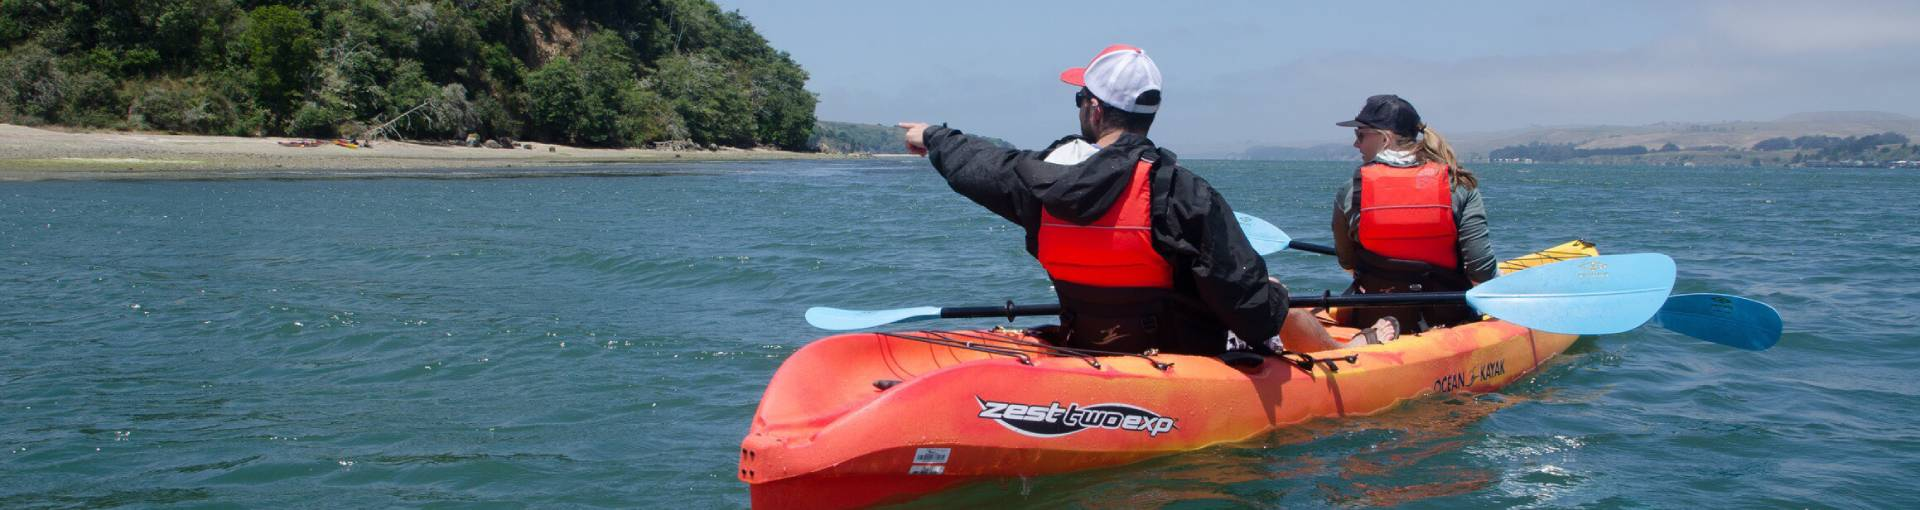 point reyes kayaking rentals, Tomales Bay kayak Rentals